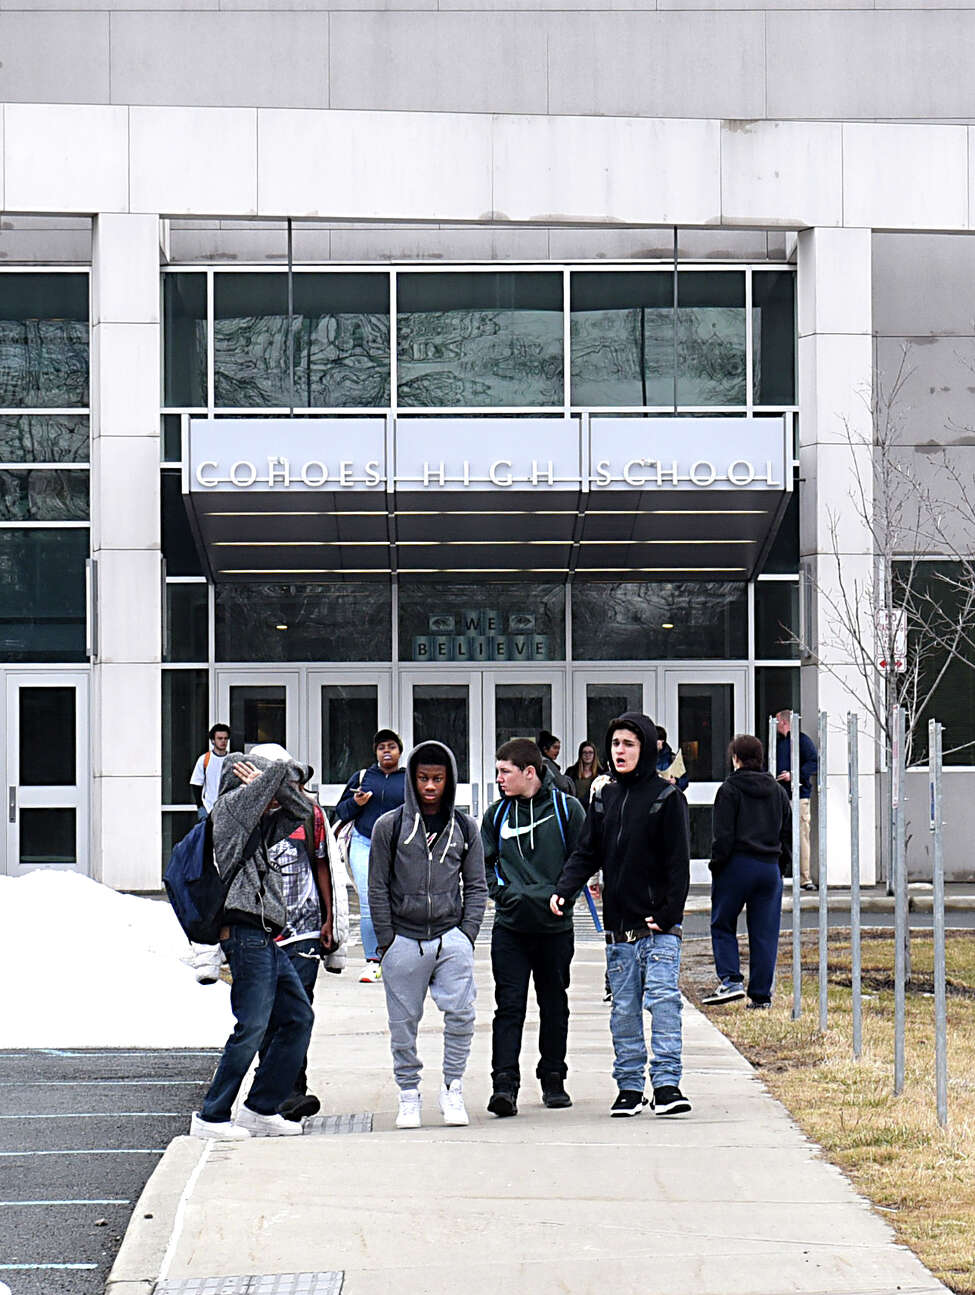 Students walk home from Cohoes High School on Monday, March 27, 2017 in Cohoes, N.Y. ( Lori Van Buren / Times Union)